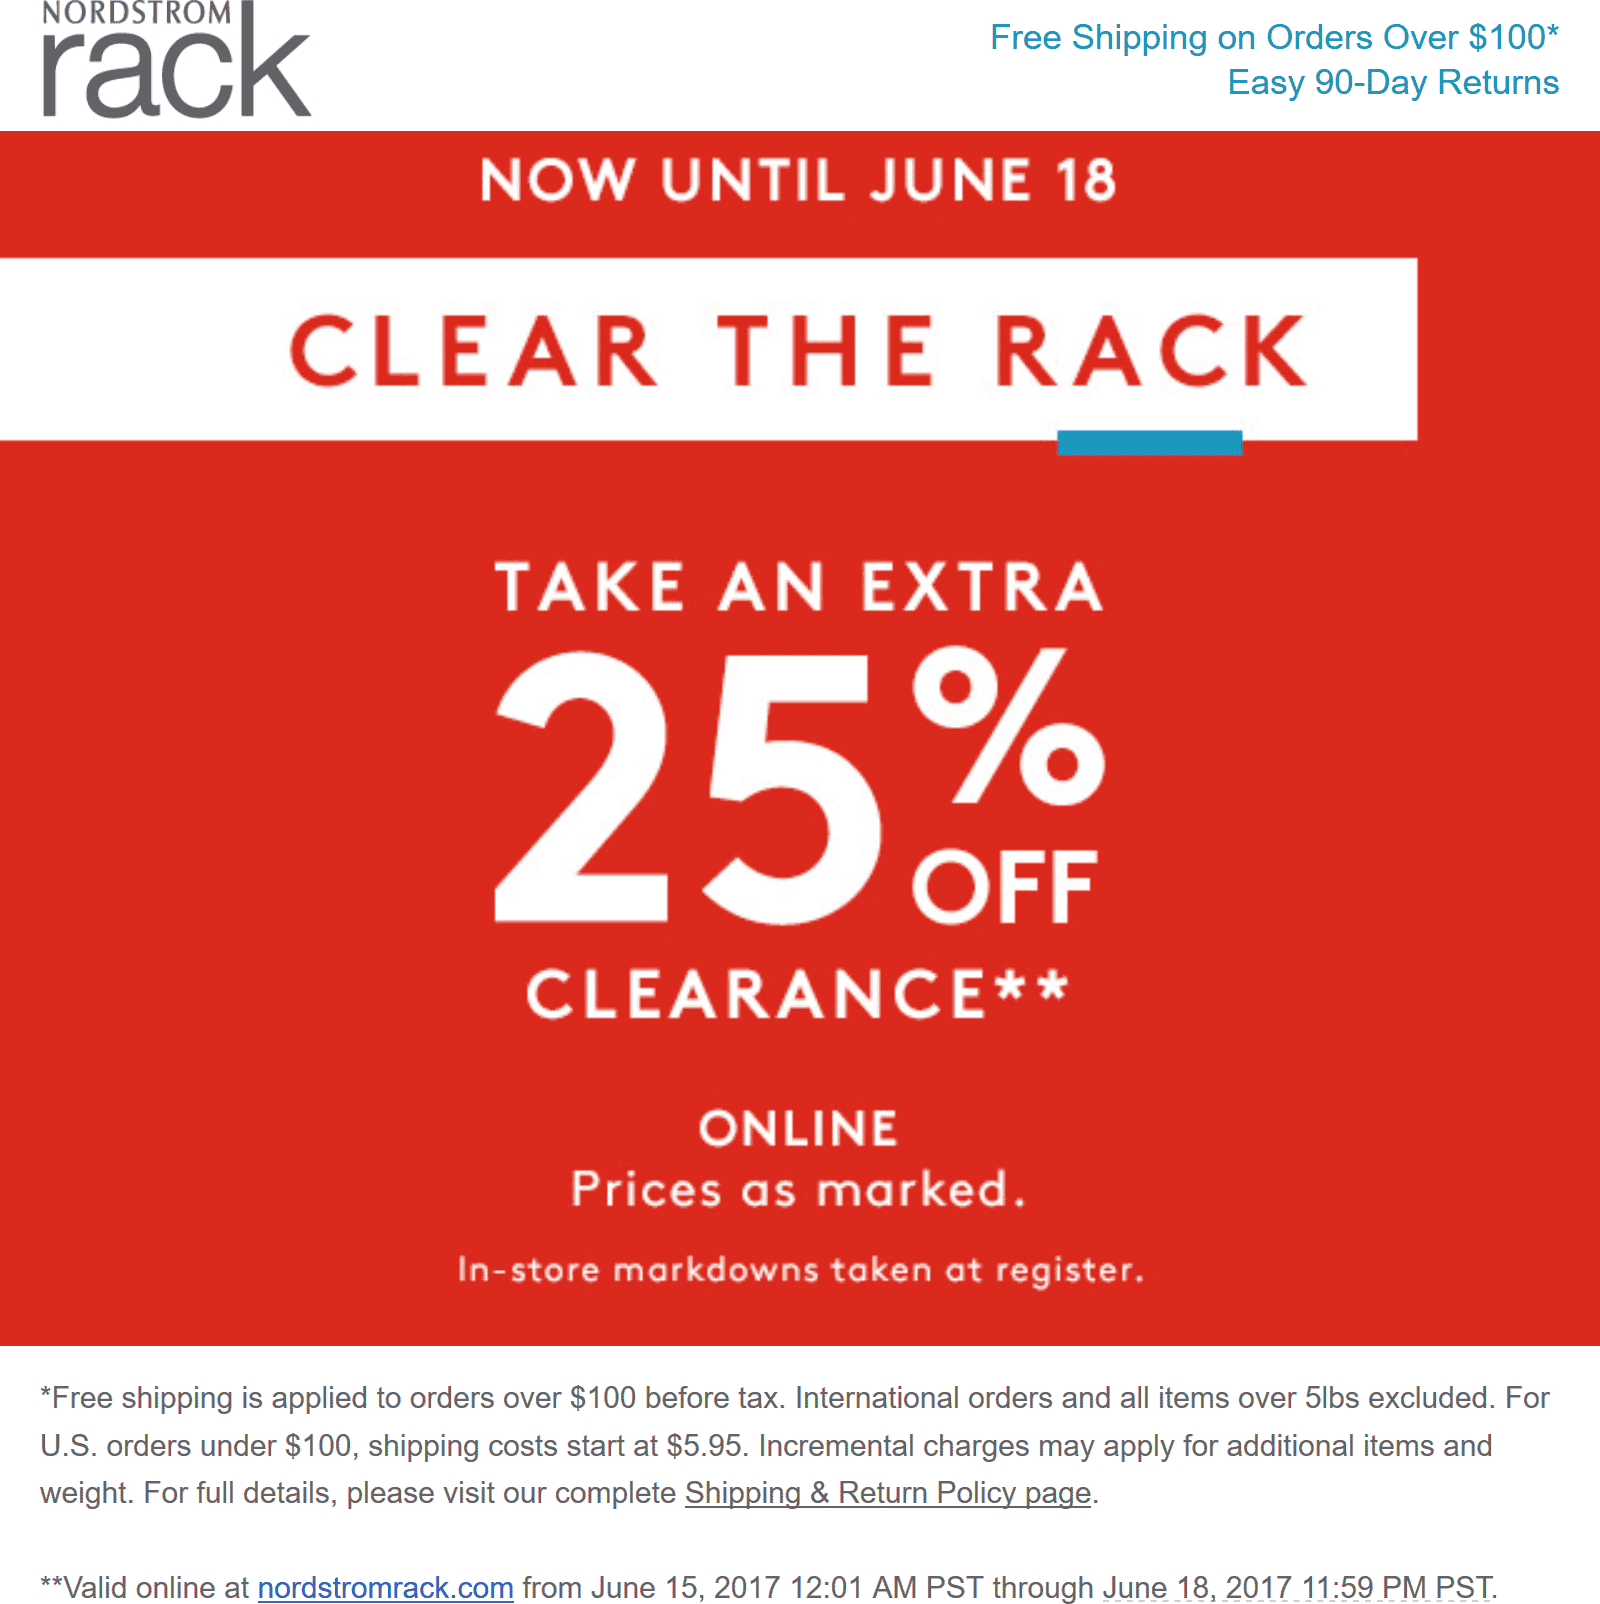 0141407ac04 Nordstrom Rack Coupons - Extra 25% off clearance at Nordstrom Rack ...